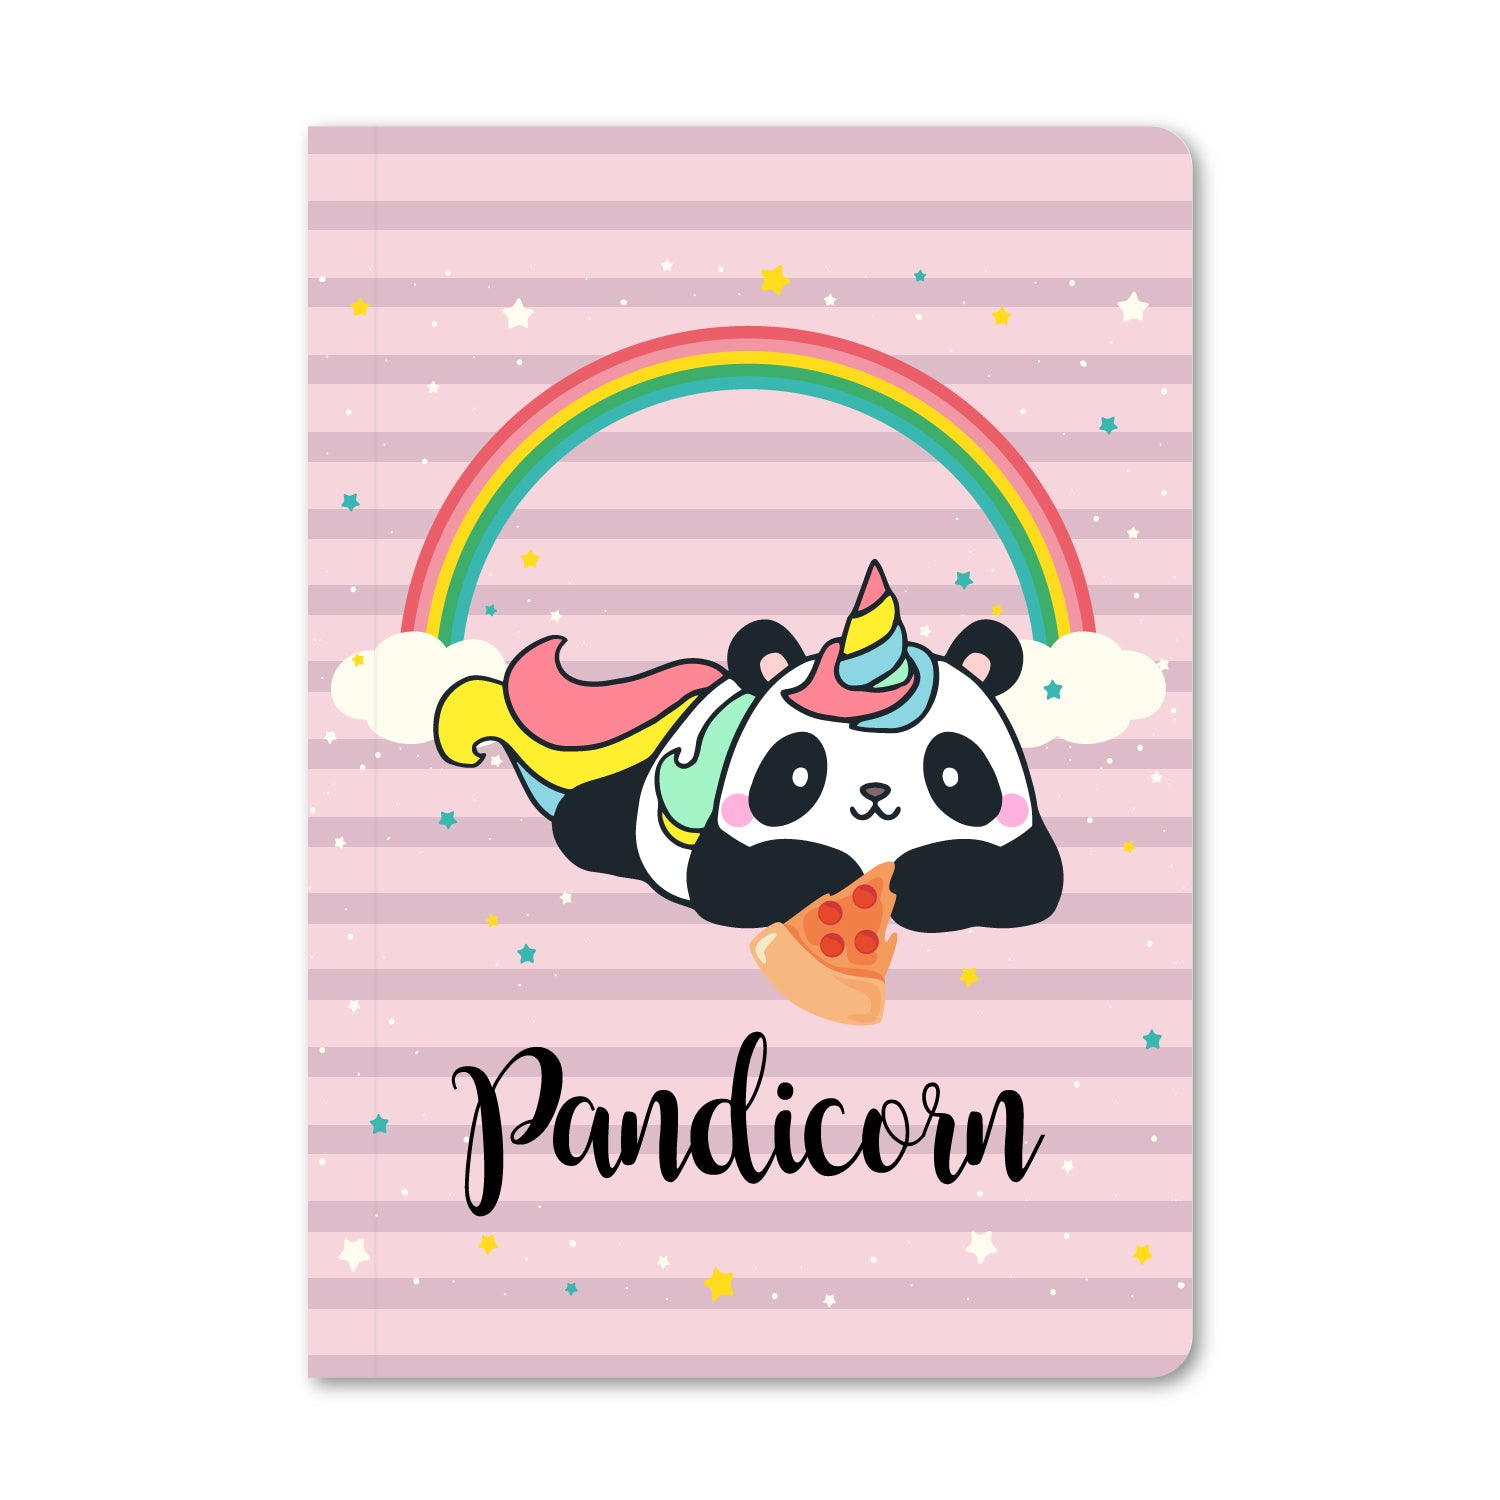 Pandicorn - Notebook